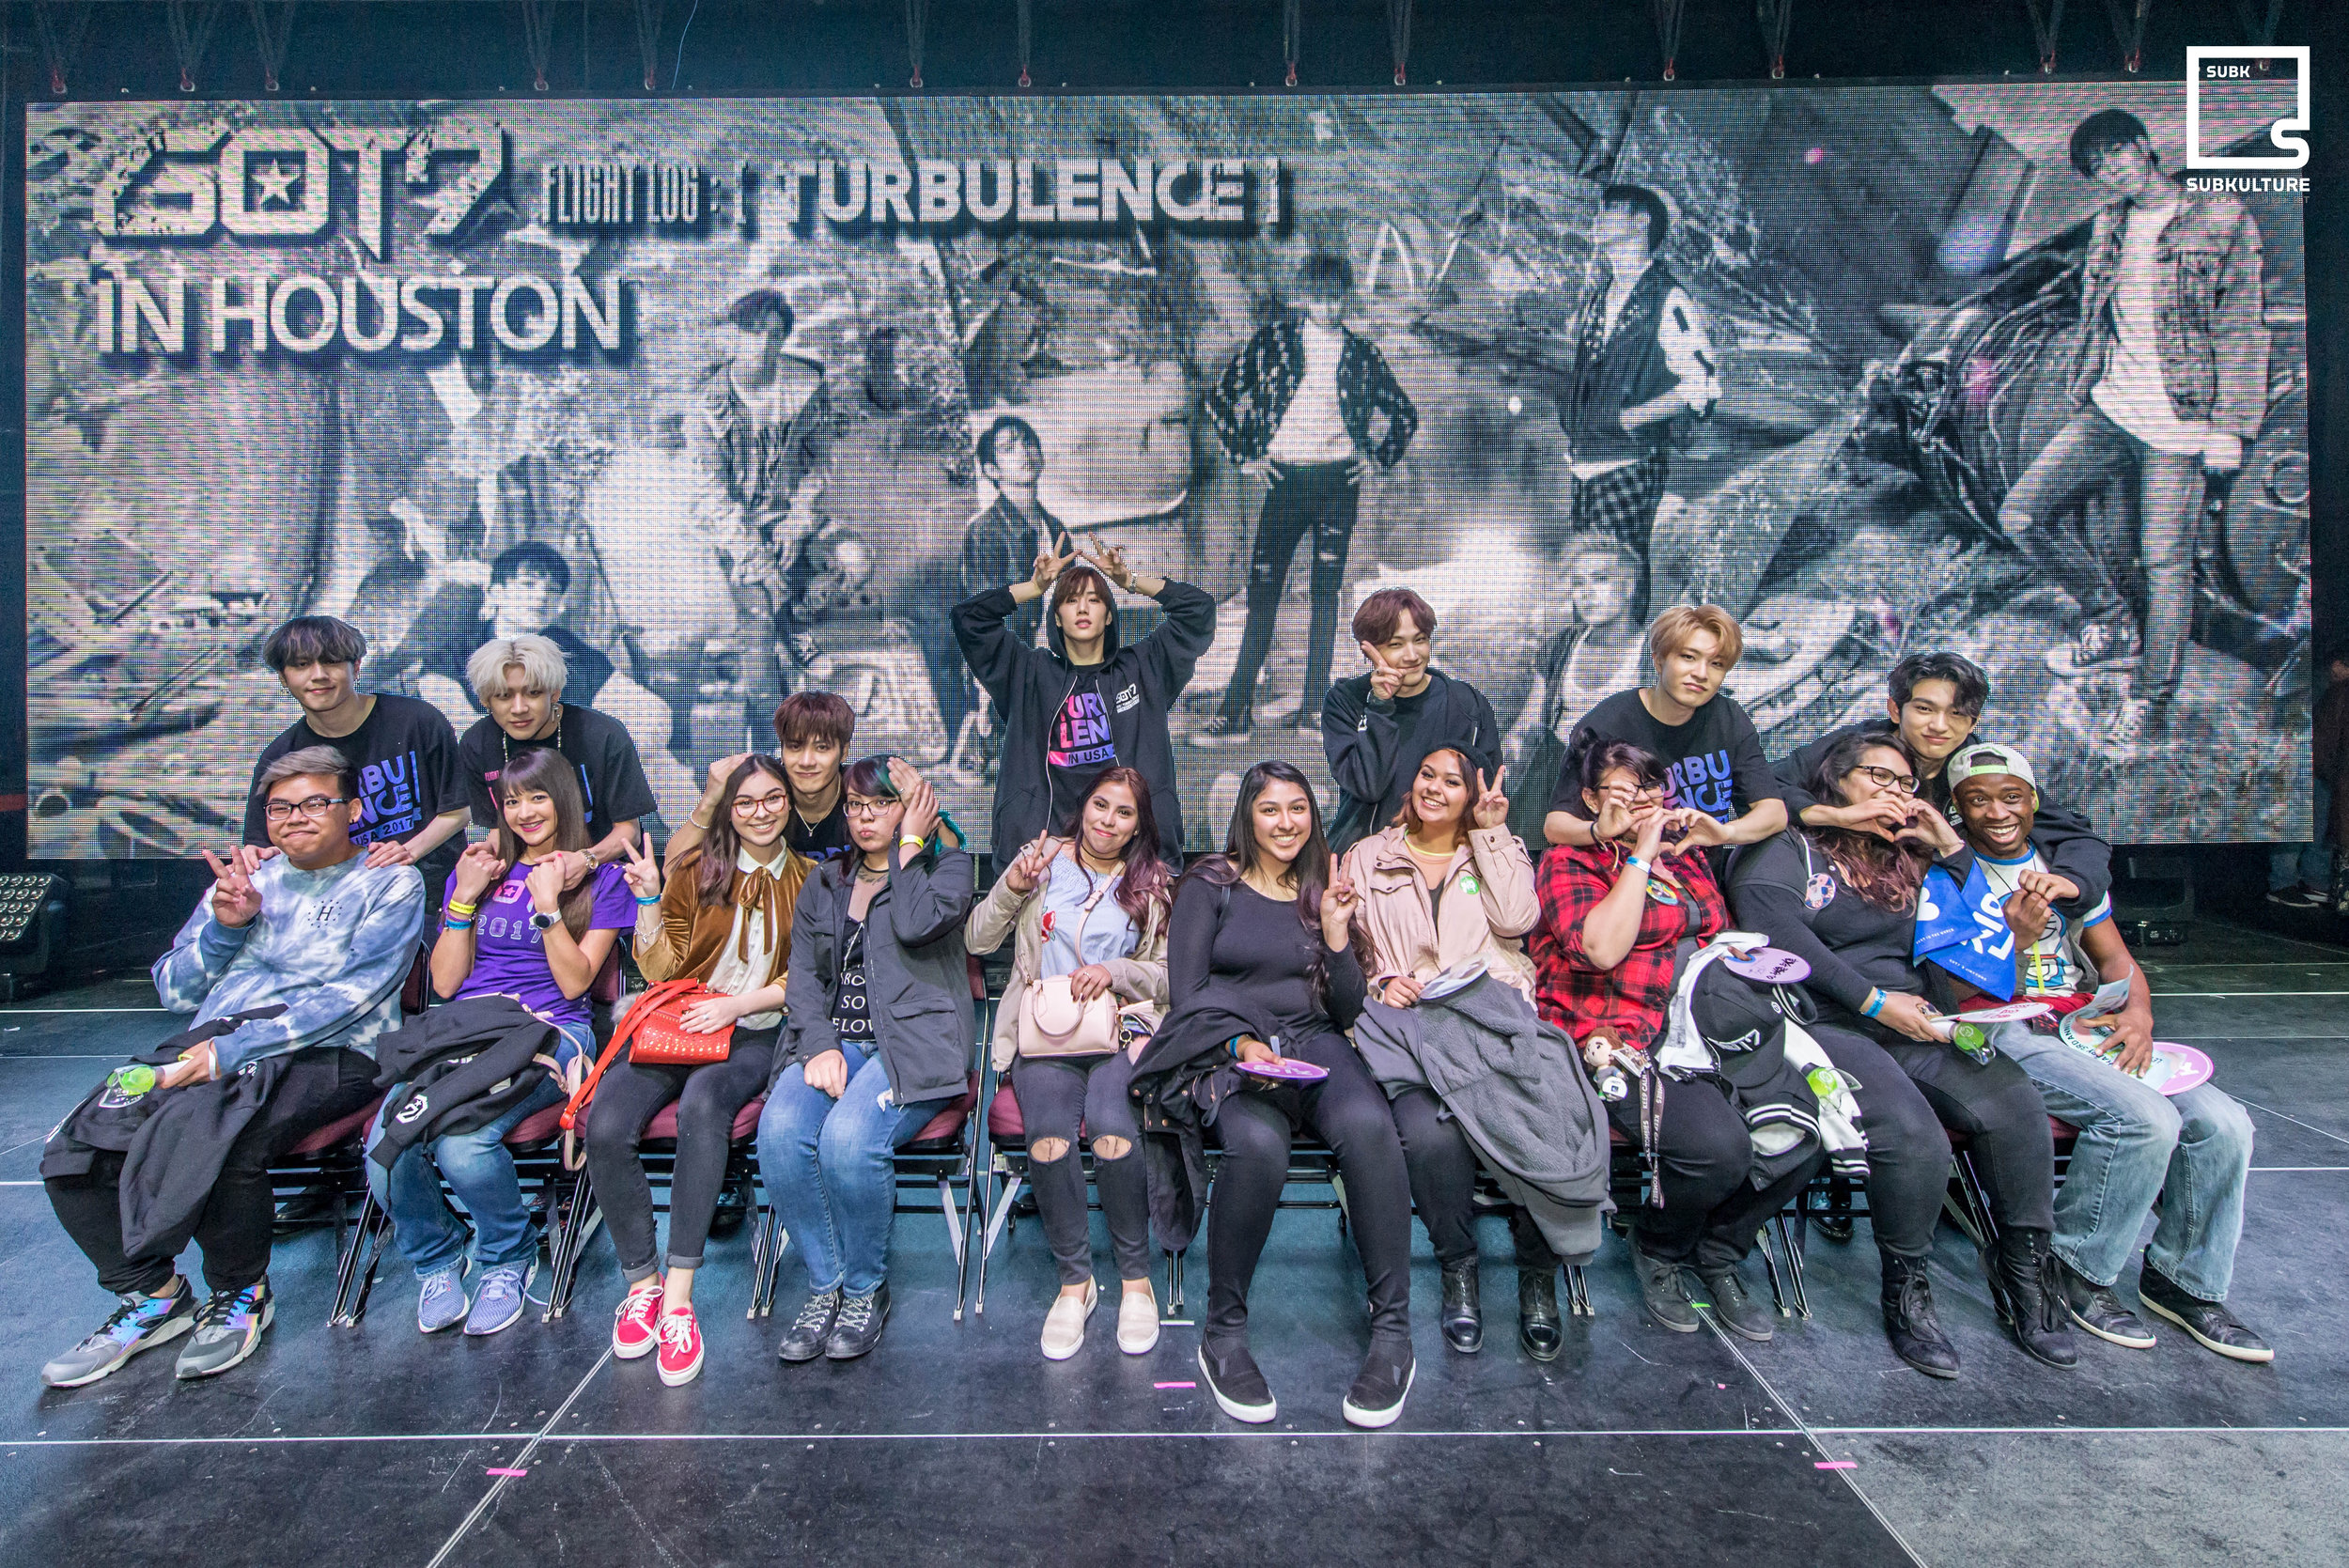 GOT7 Fan Photo Houston 2017 SubKulture Entertainment-3771 copy.jpg